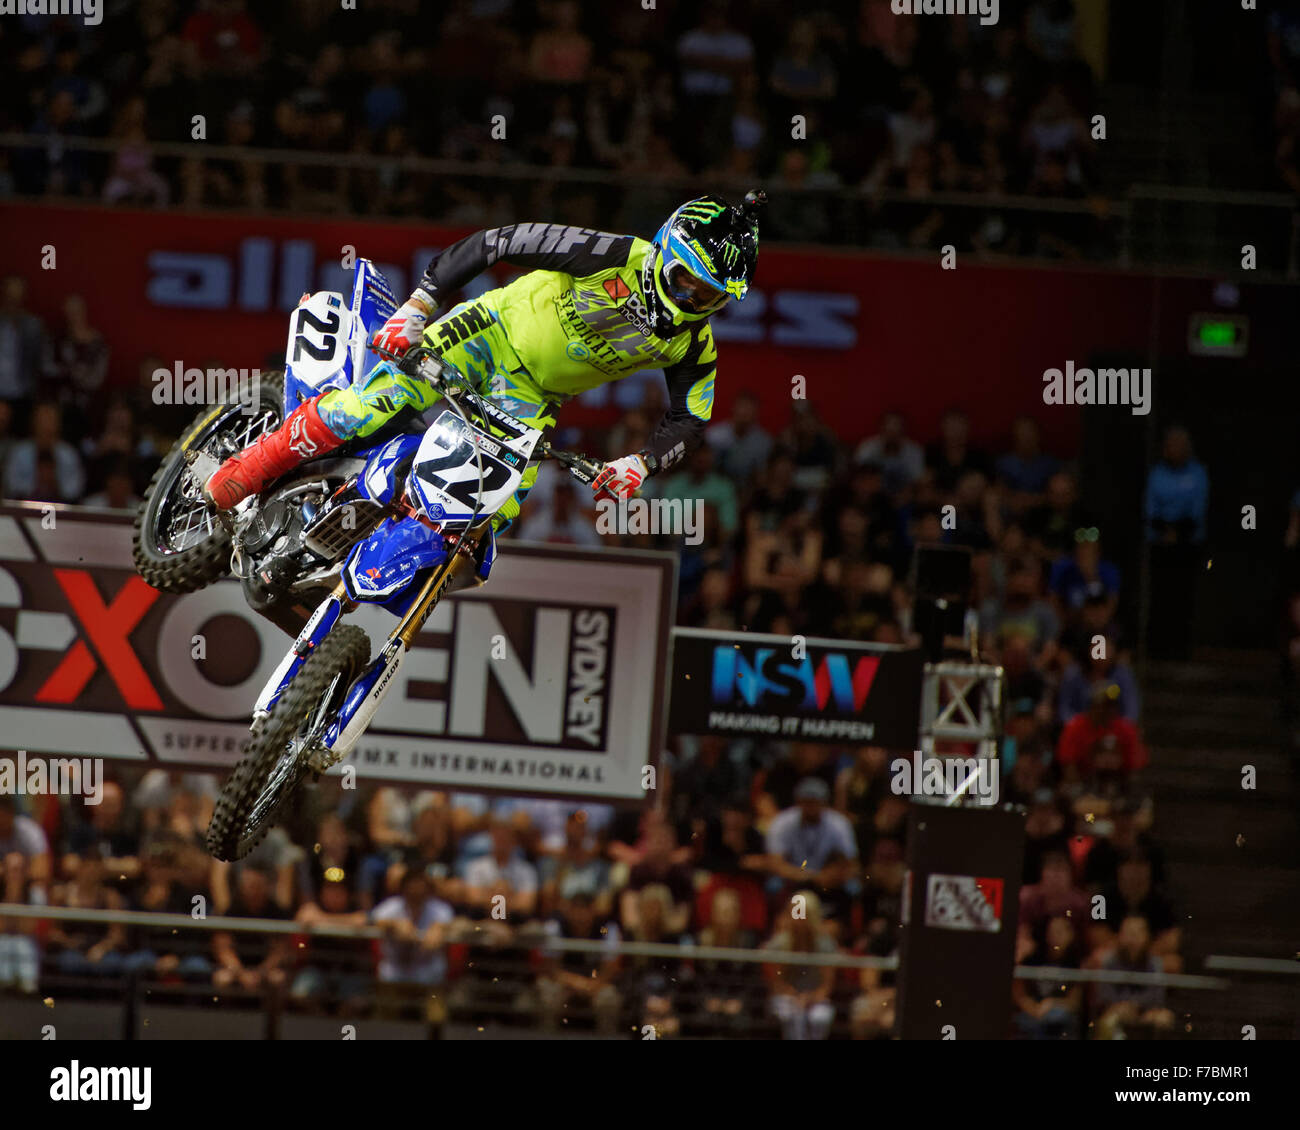 Sydney Olympic Park Australia 28th Nov 2015 The AUS X Open Motocross Day One Chad Reed Rider Of 22 Yamaha Comes Down After A Jump In